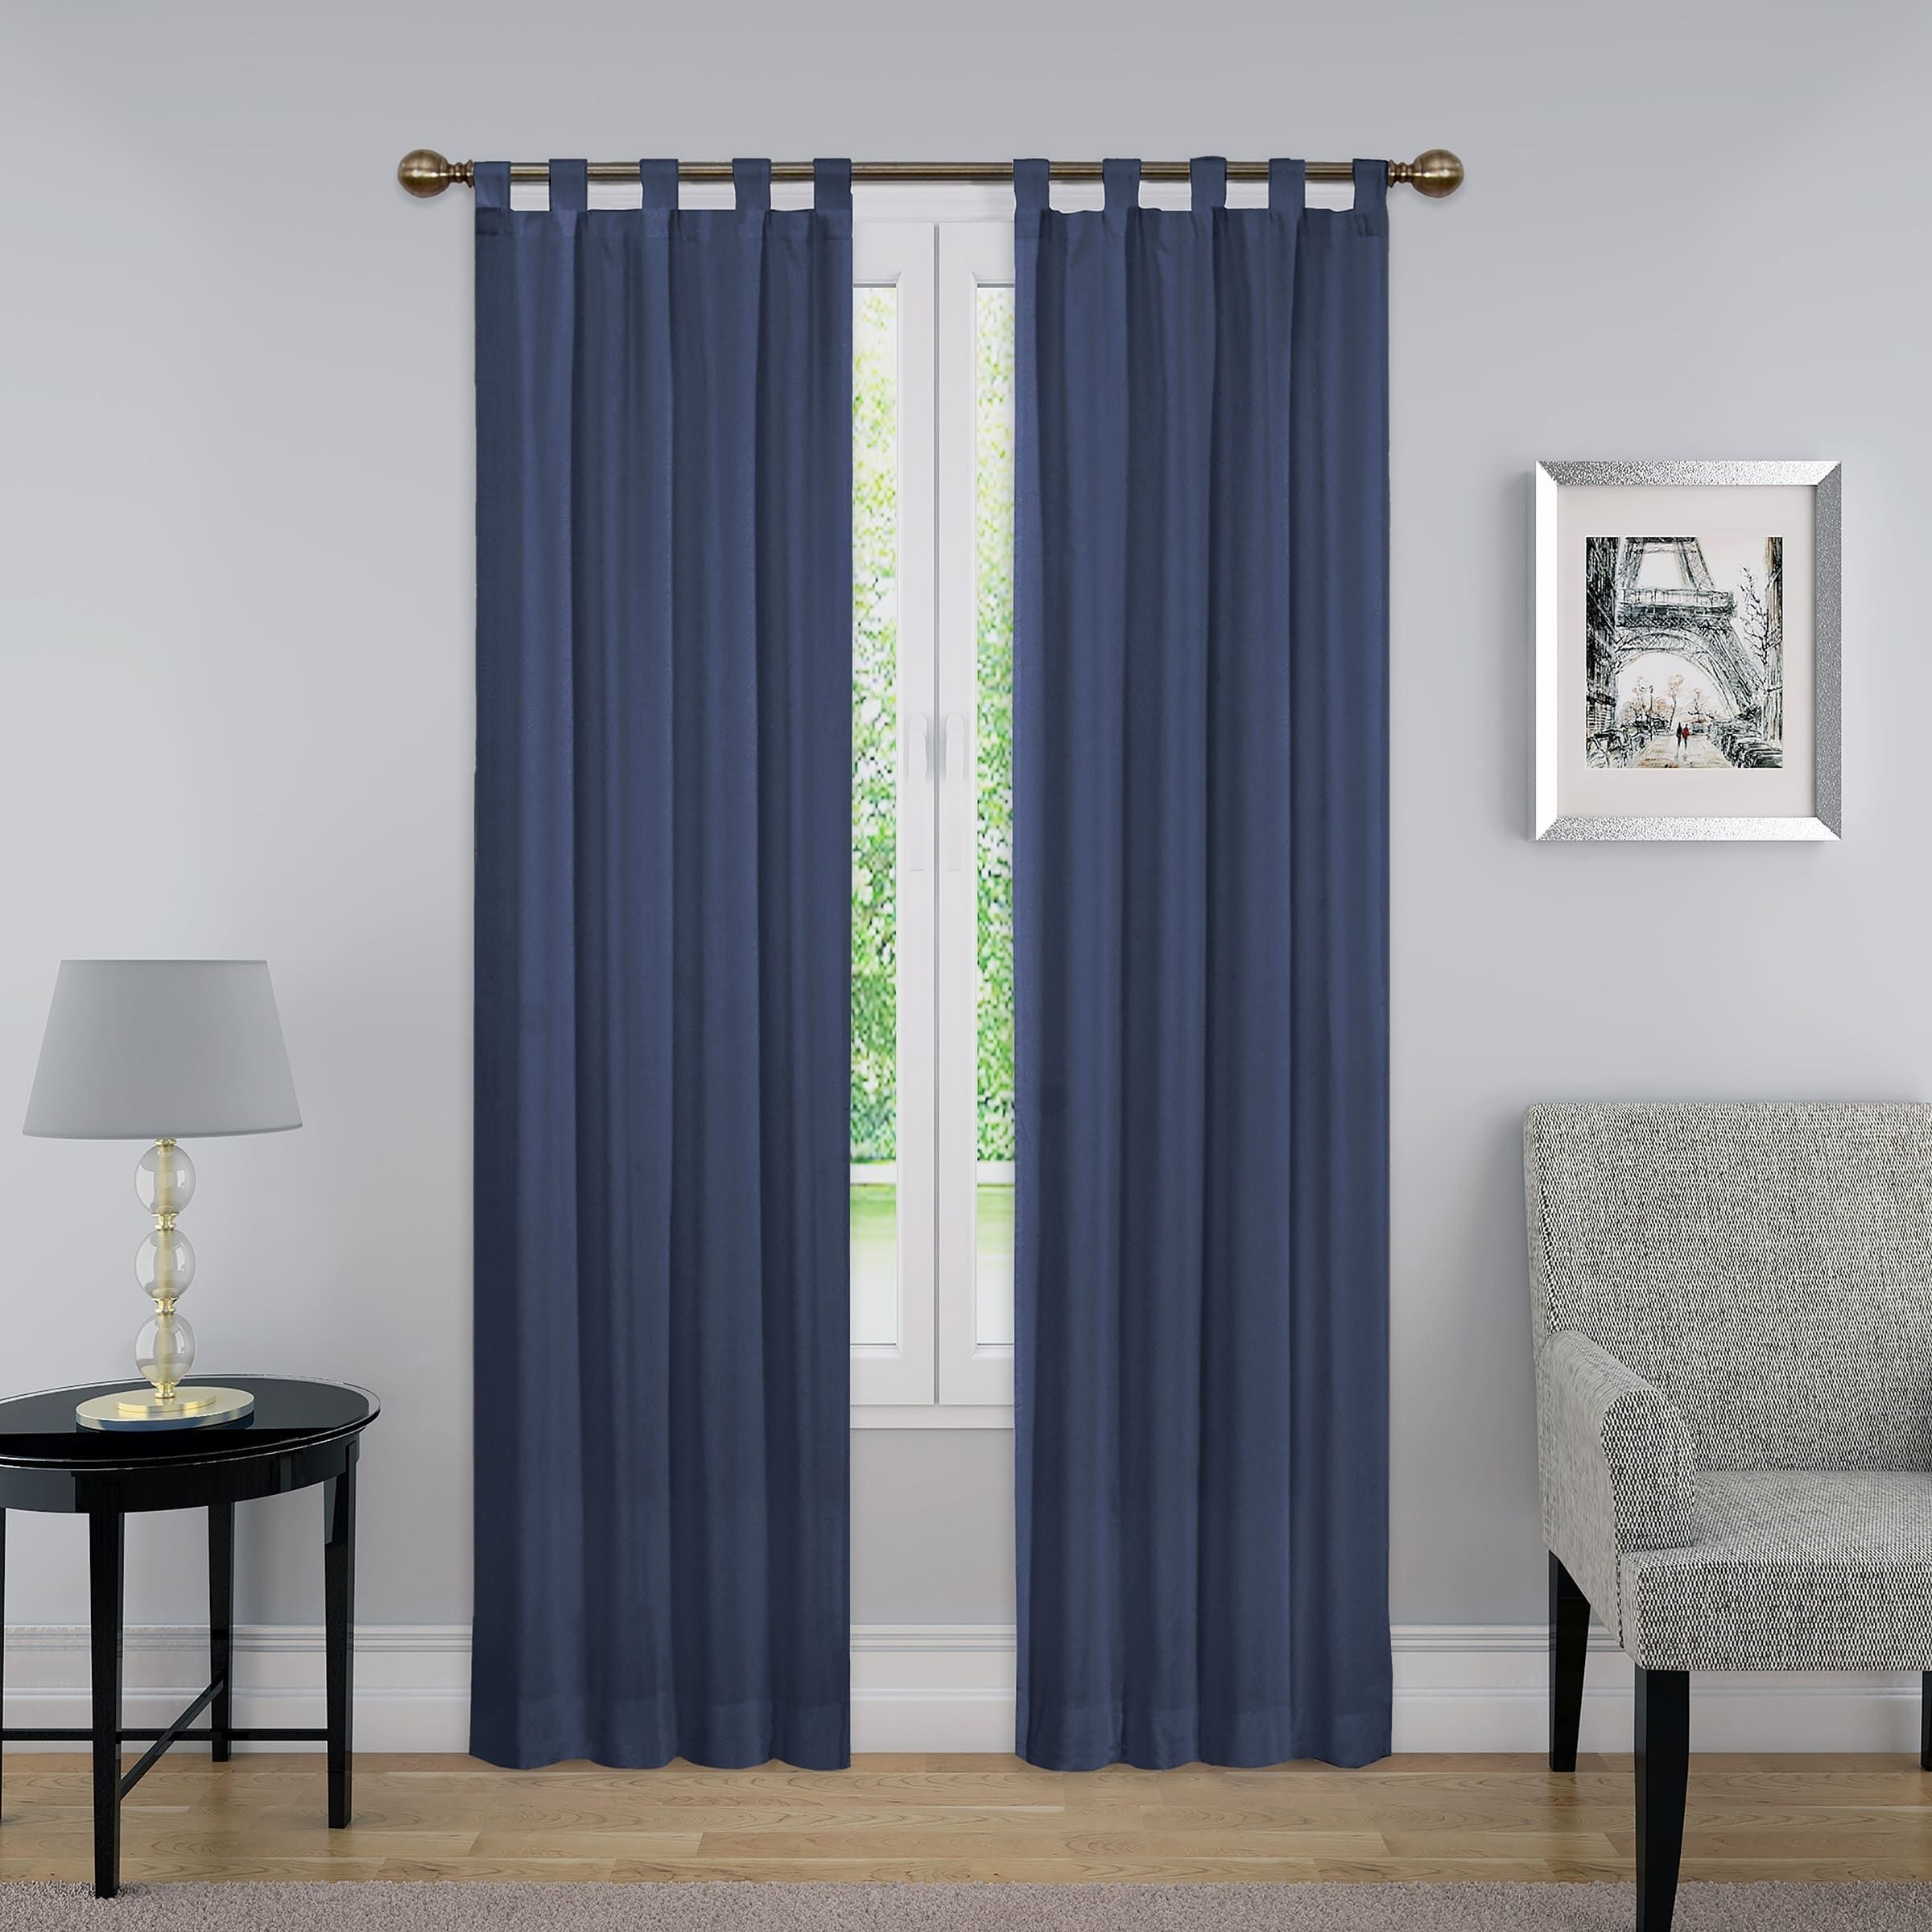 Porch Den Cloverleaf Curtain Panel Pair Panel Curtains